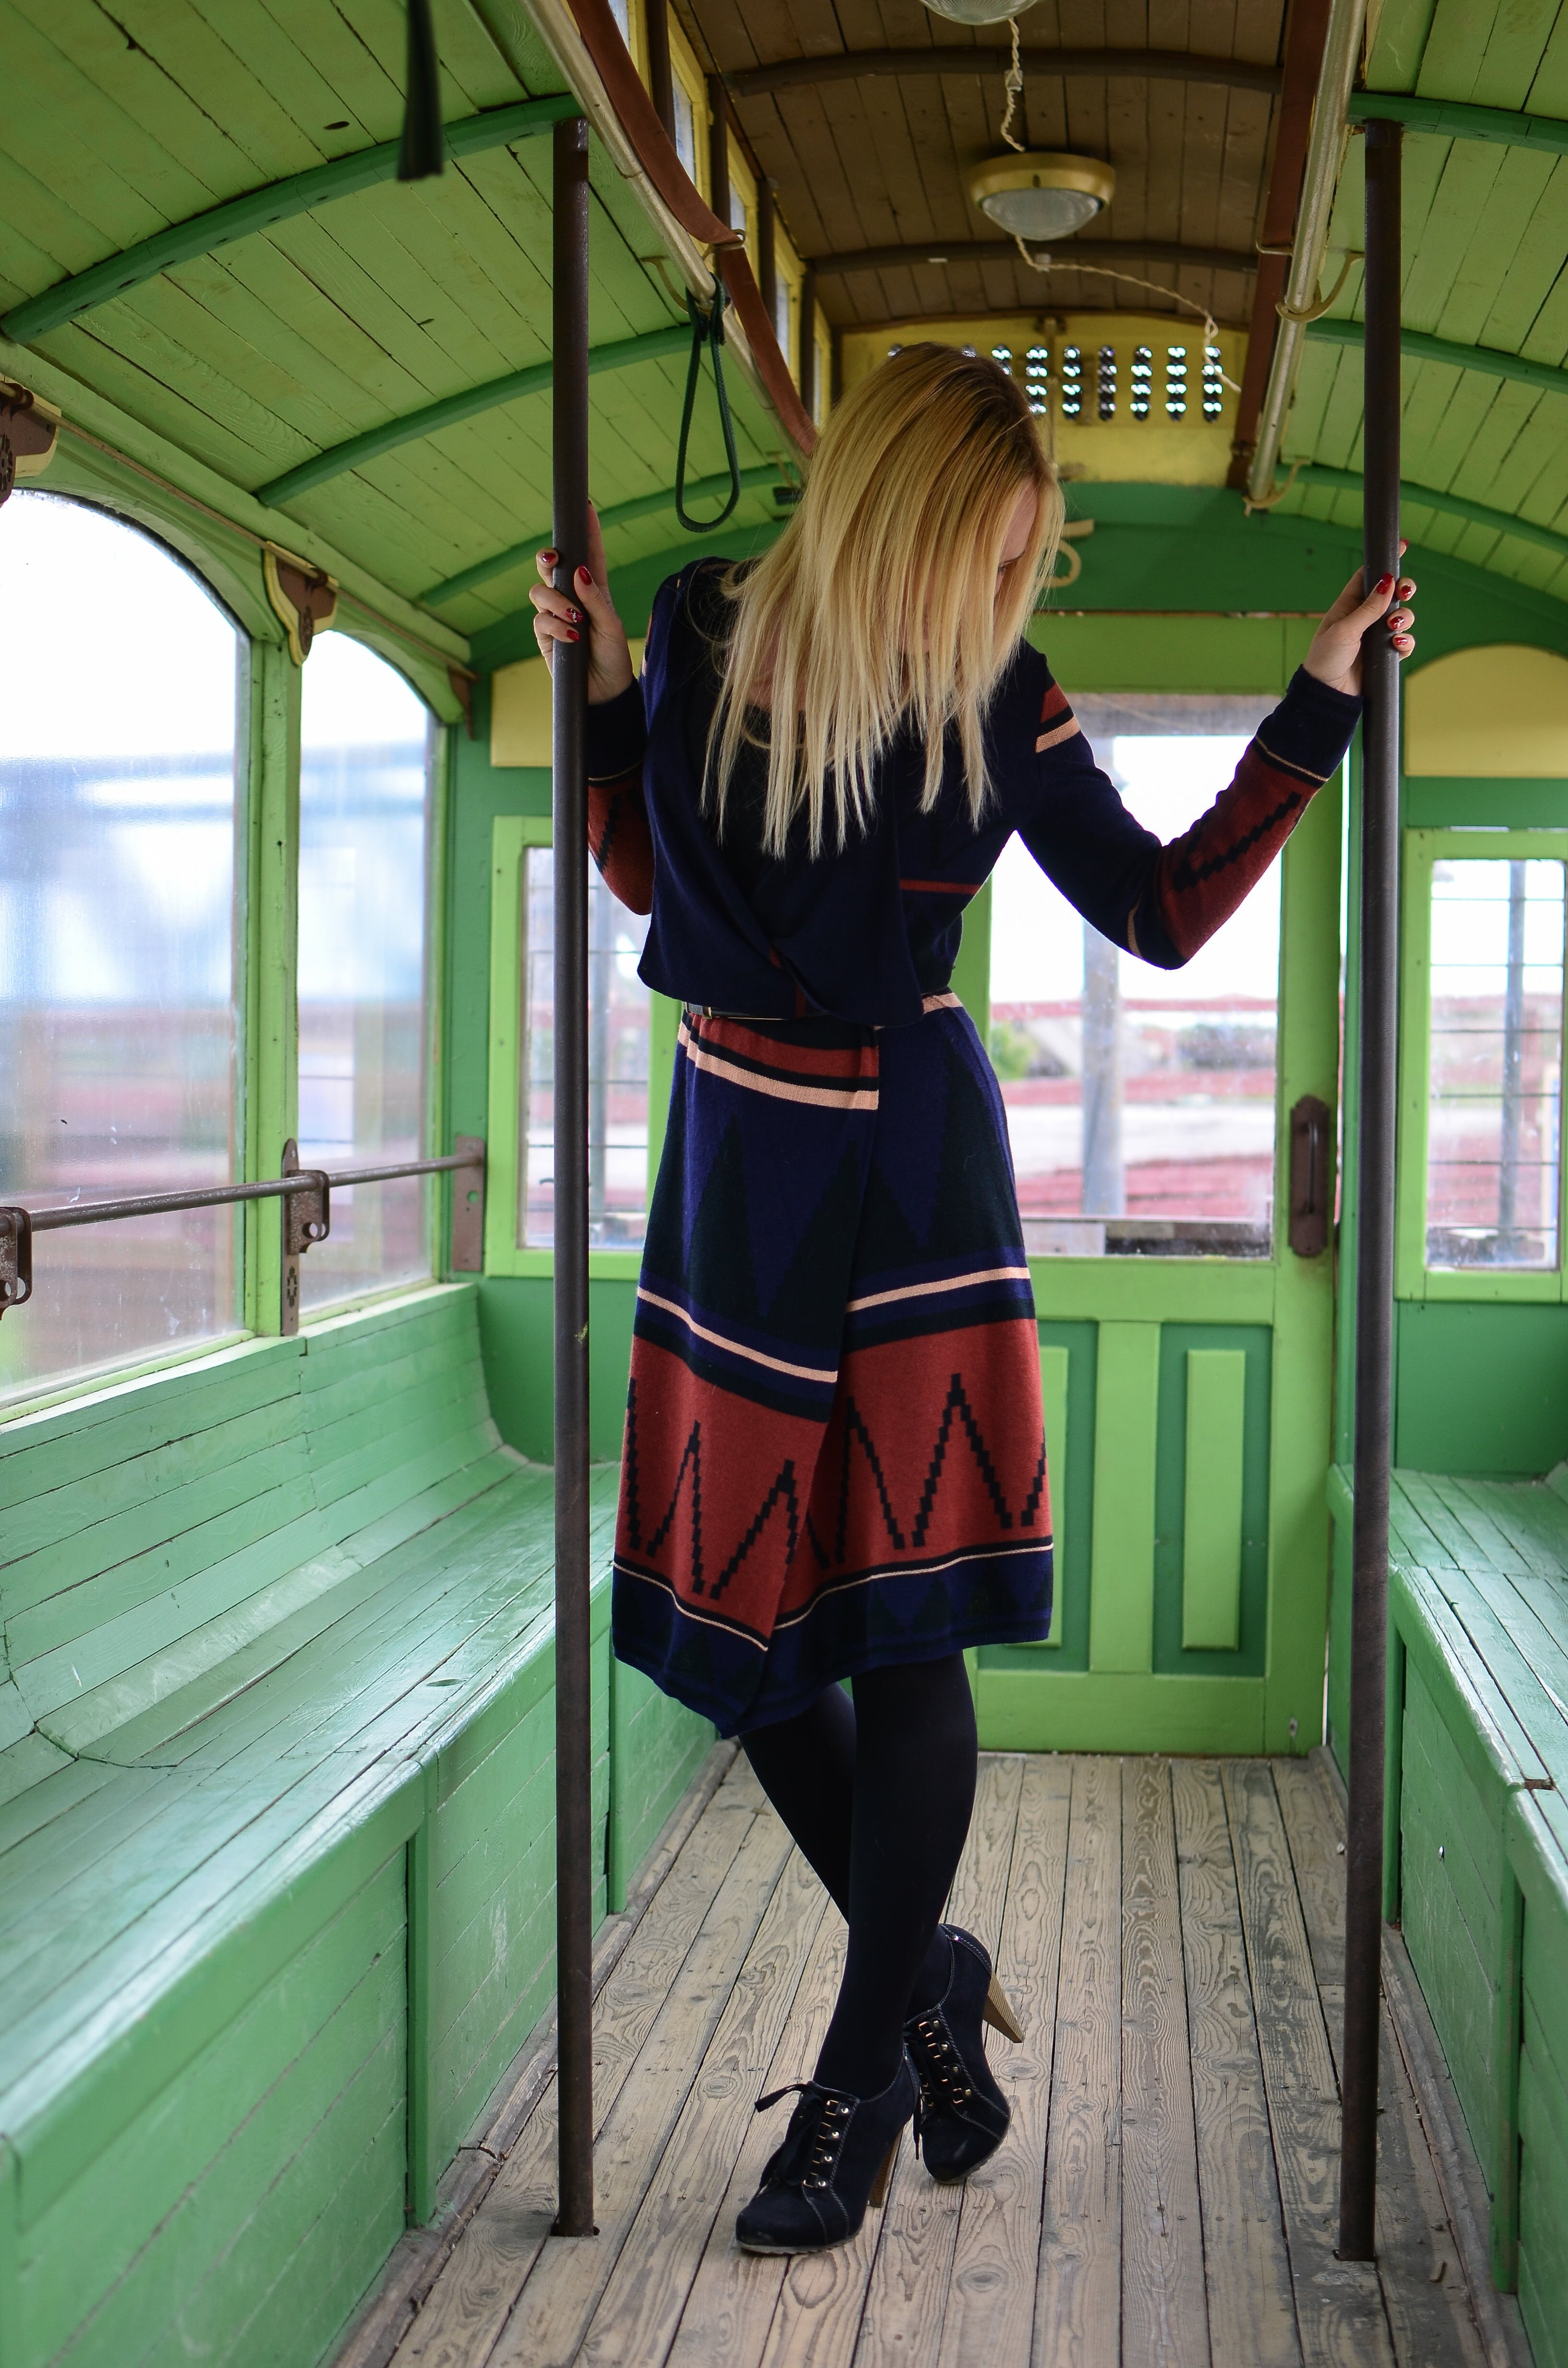 Woman Standing Inside the Bus